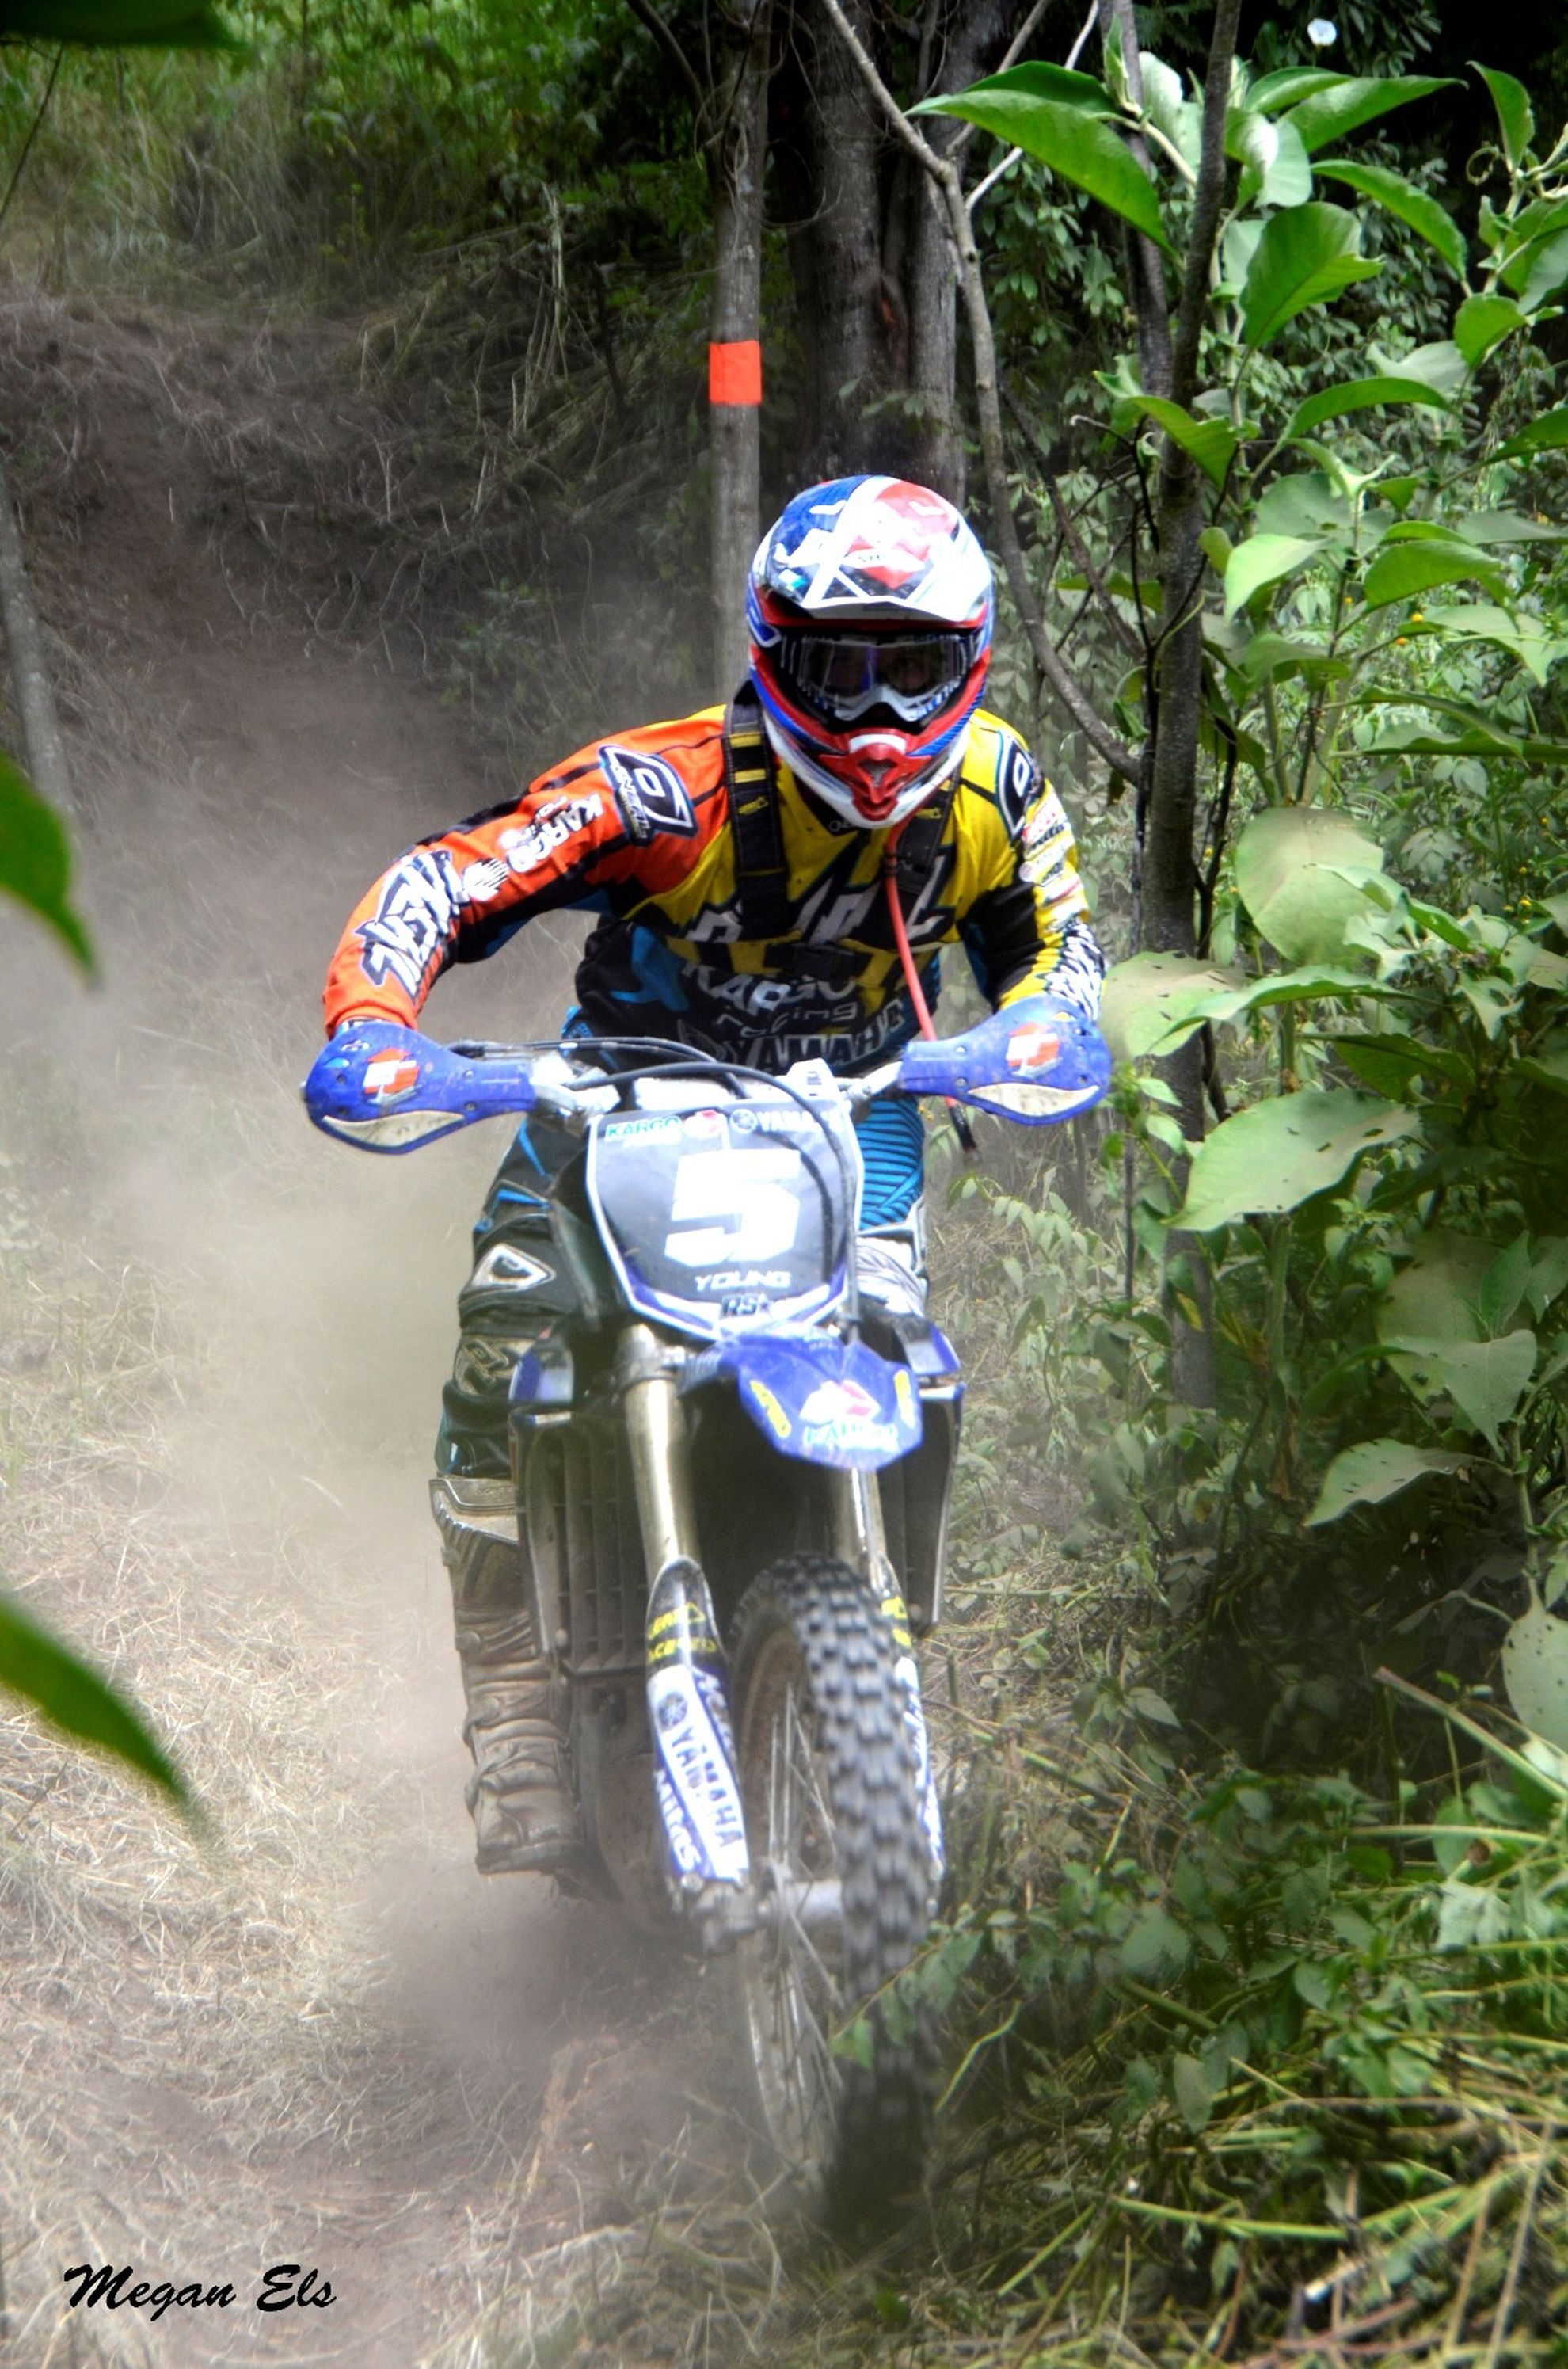 BATTLES-TO-CONTINUE-AS-NATIONAL-ENDURO-MOTORCYCLE-CHAMPIONSHIP-REACHES-HALFWAY-MARK2-tim-young